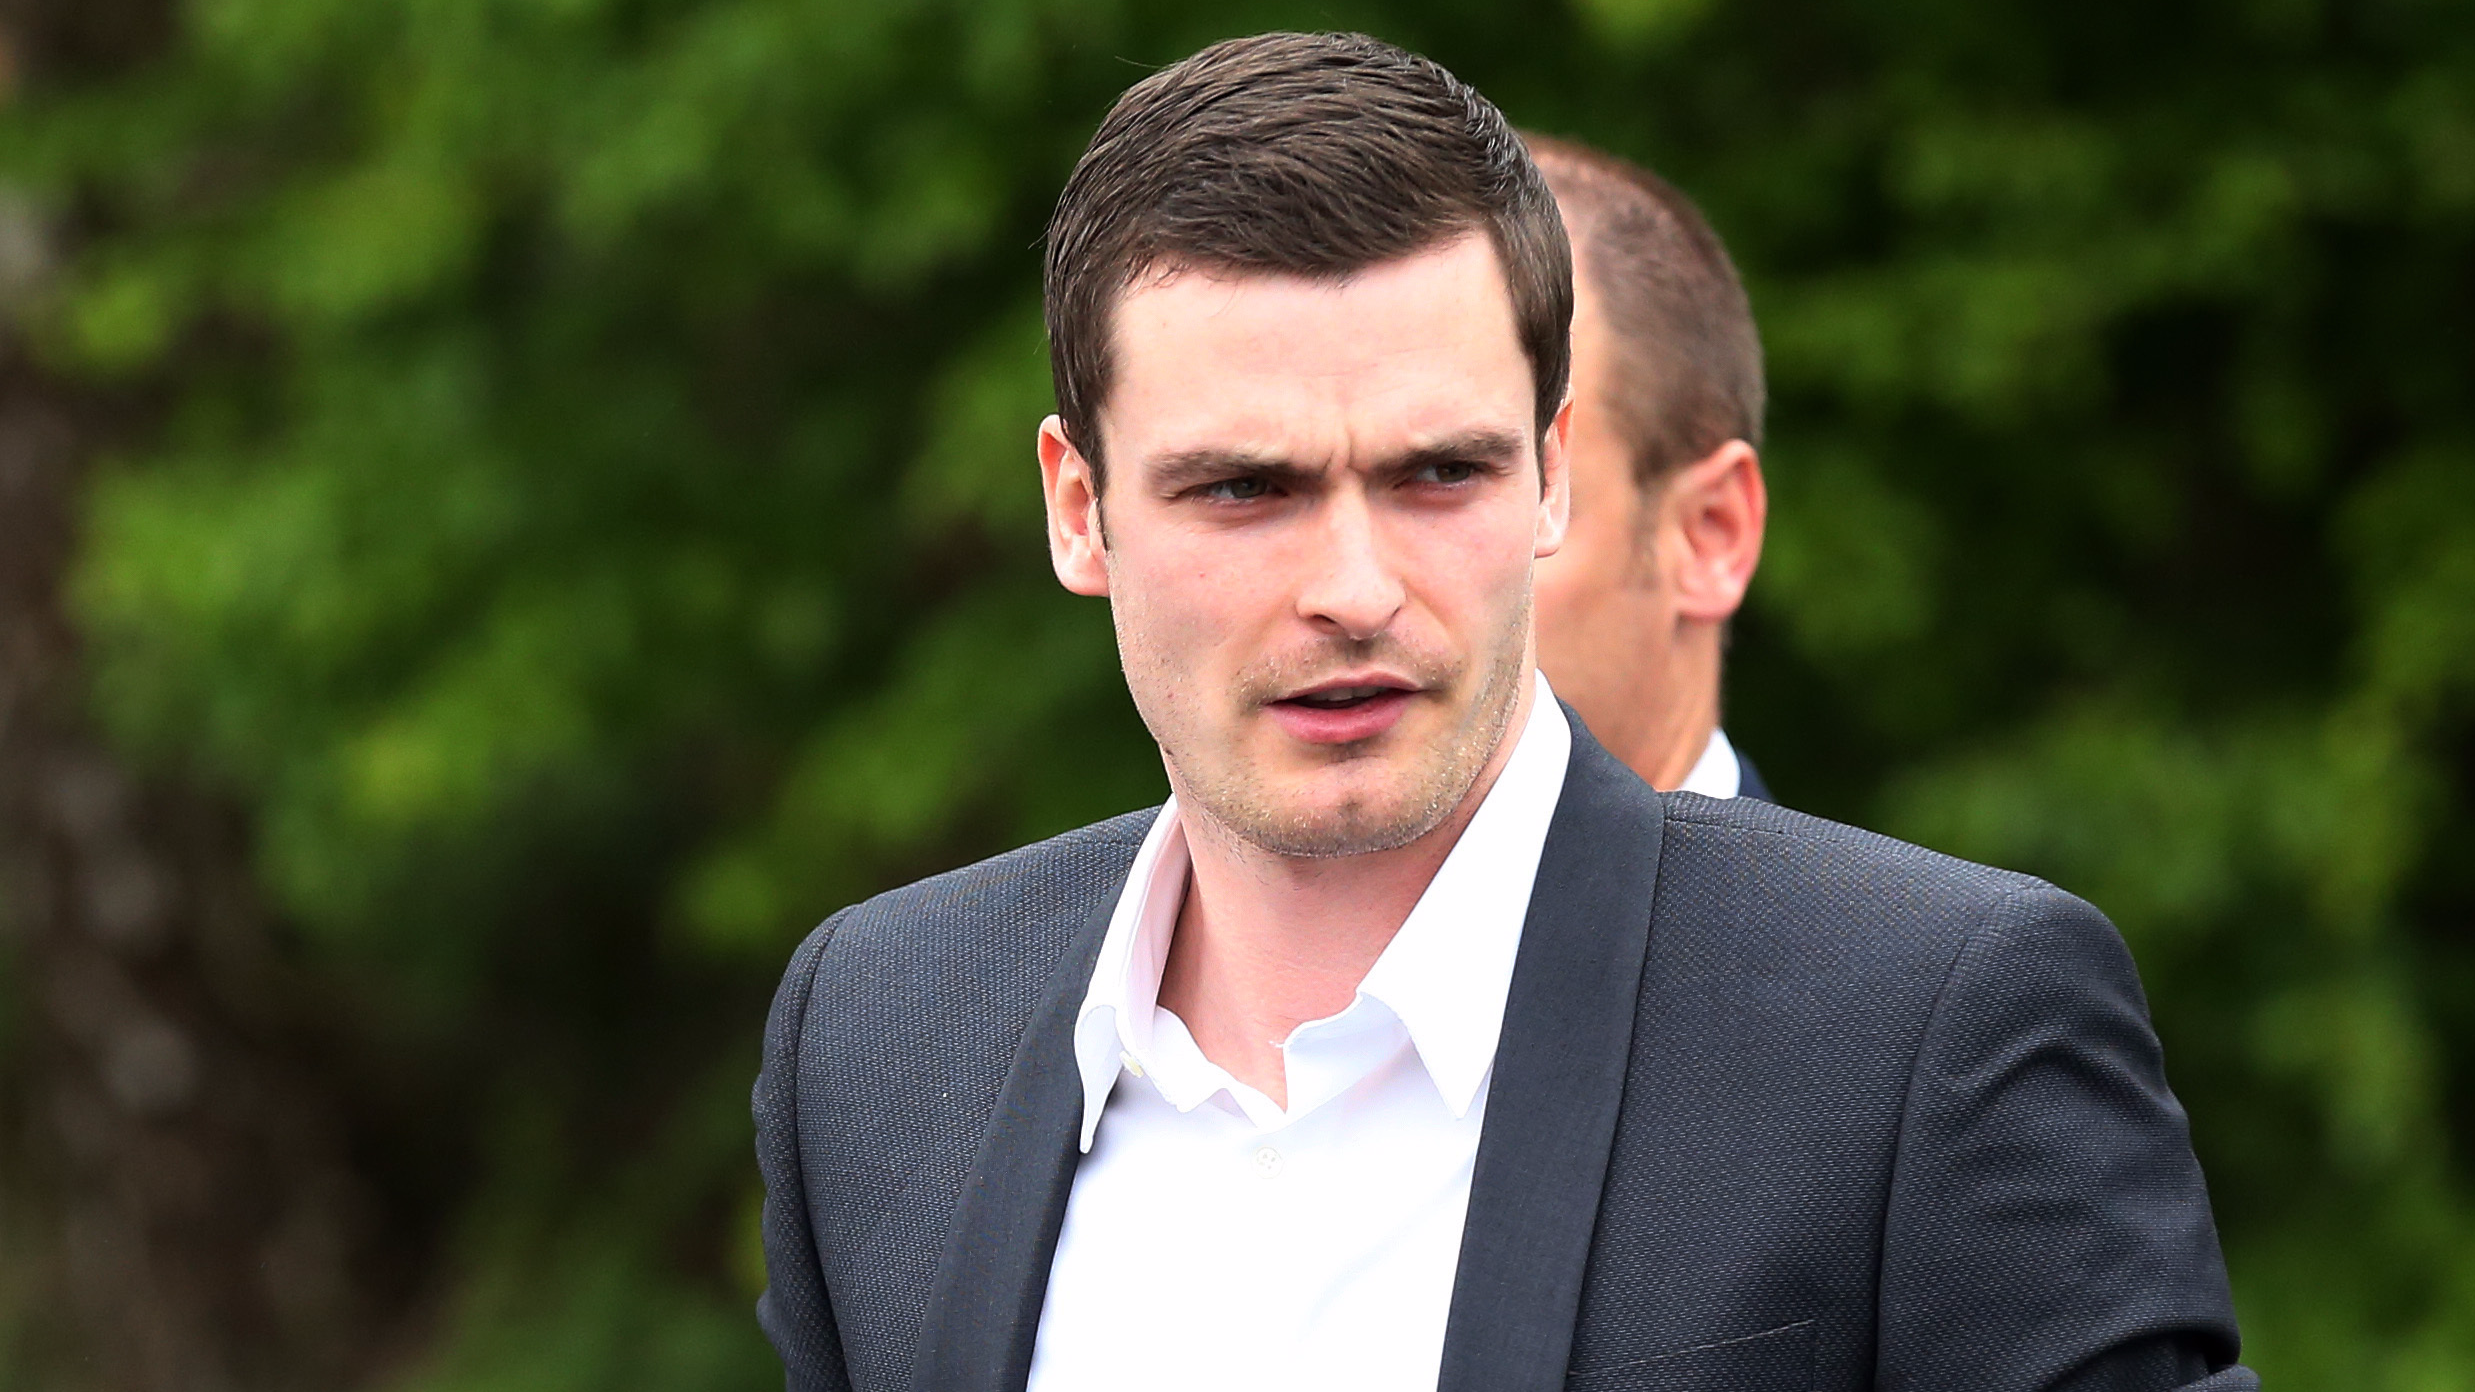 Adam Johnson Filmed In Prison Saying He Wishes He'd Raped His Victim